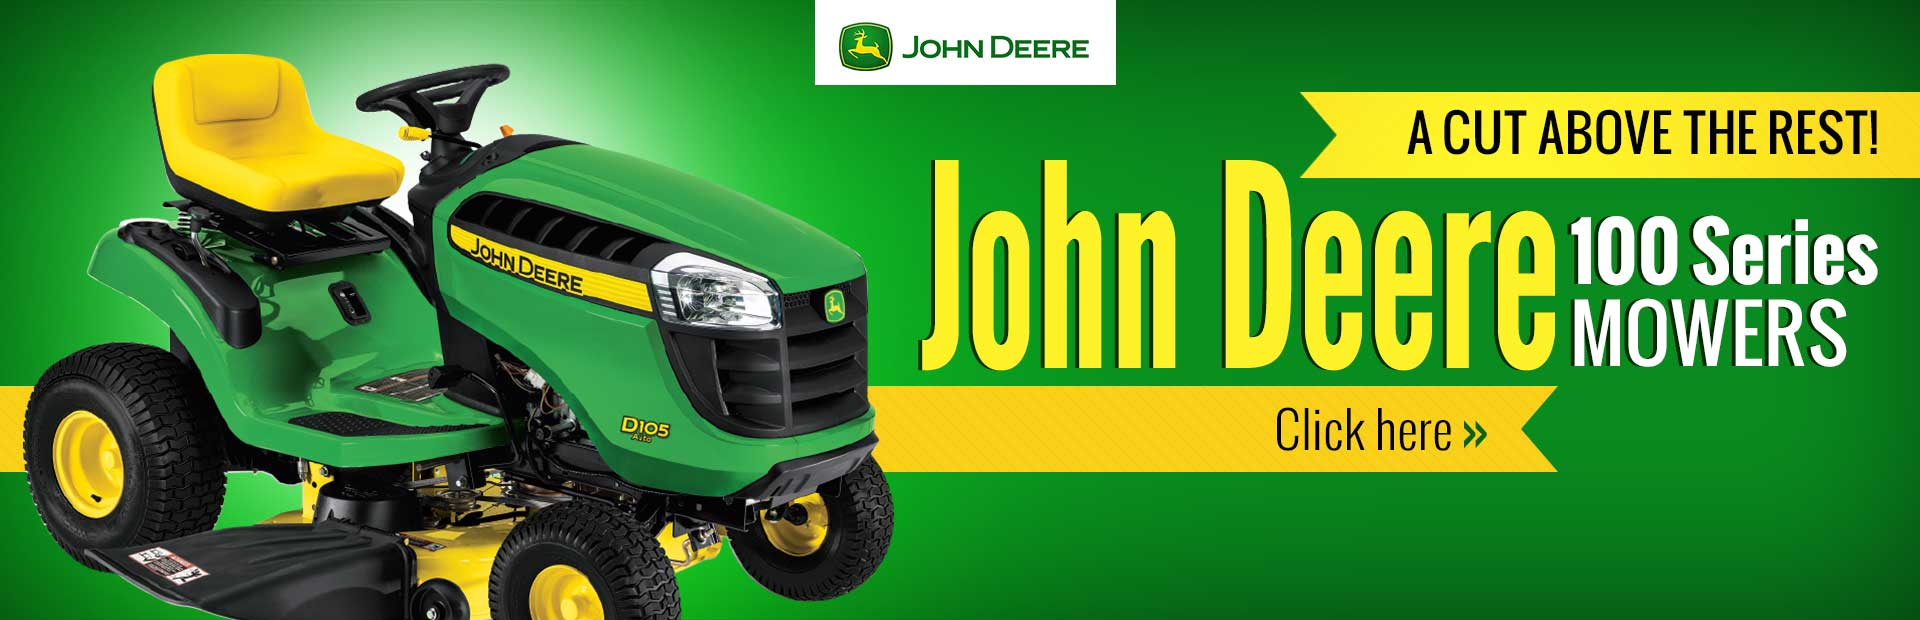 John Deere 100 Series Mowers: Click here to view our selection.